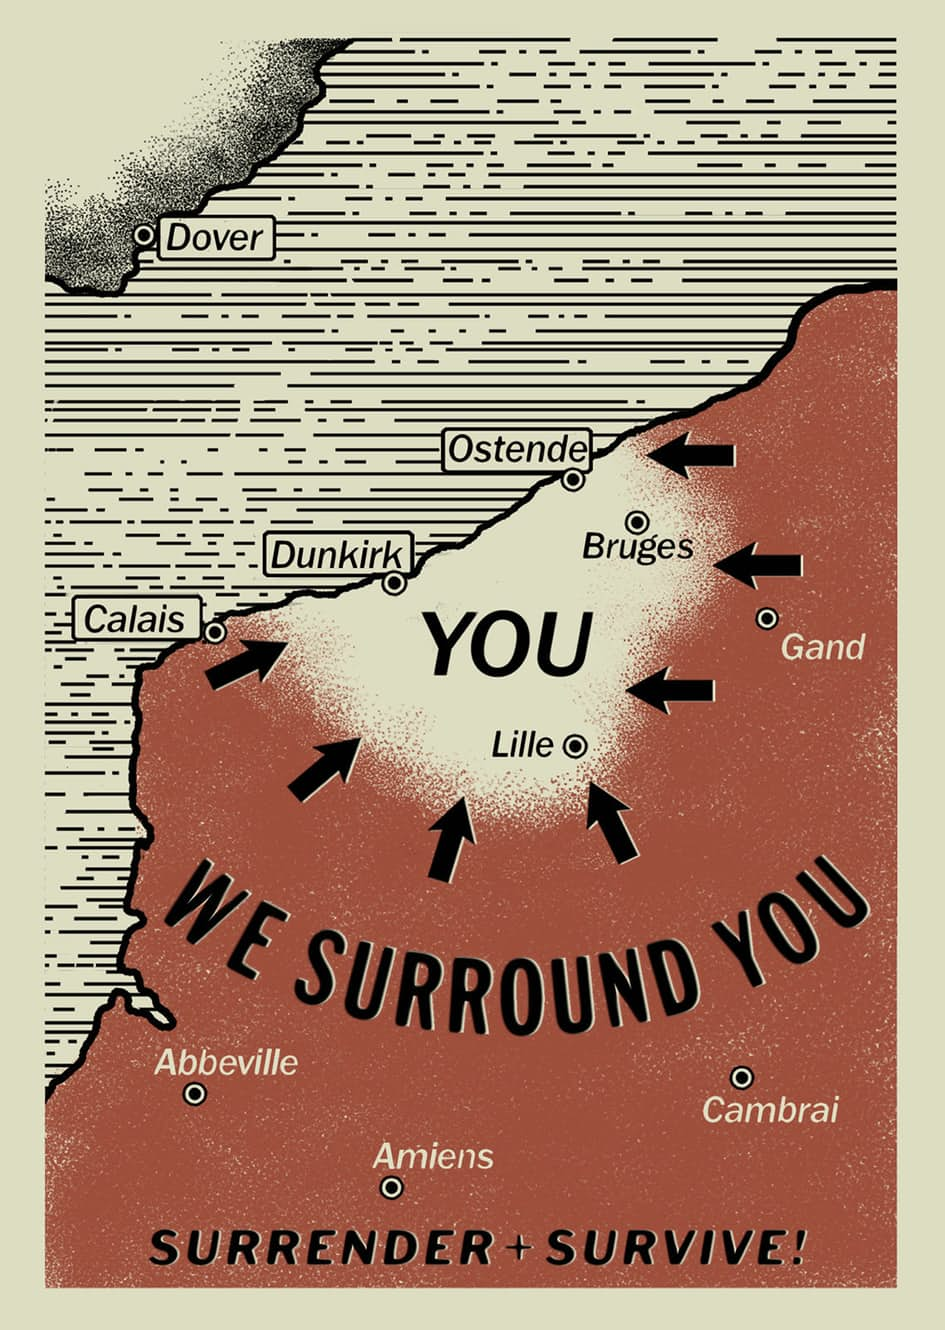 dunkirk-movie-map